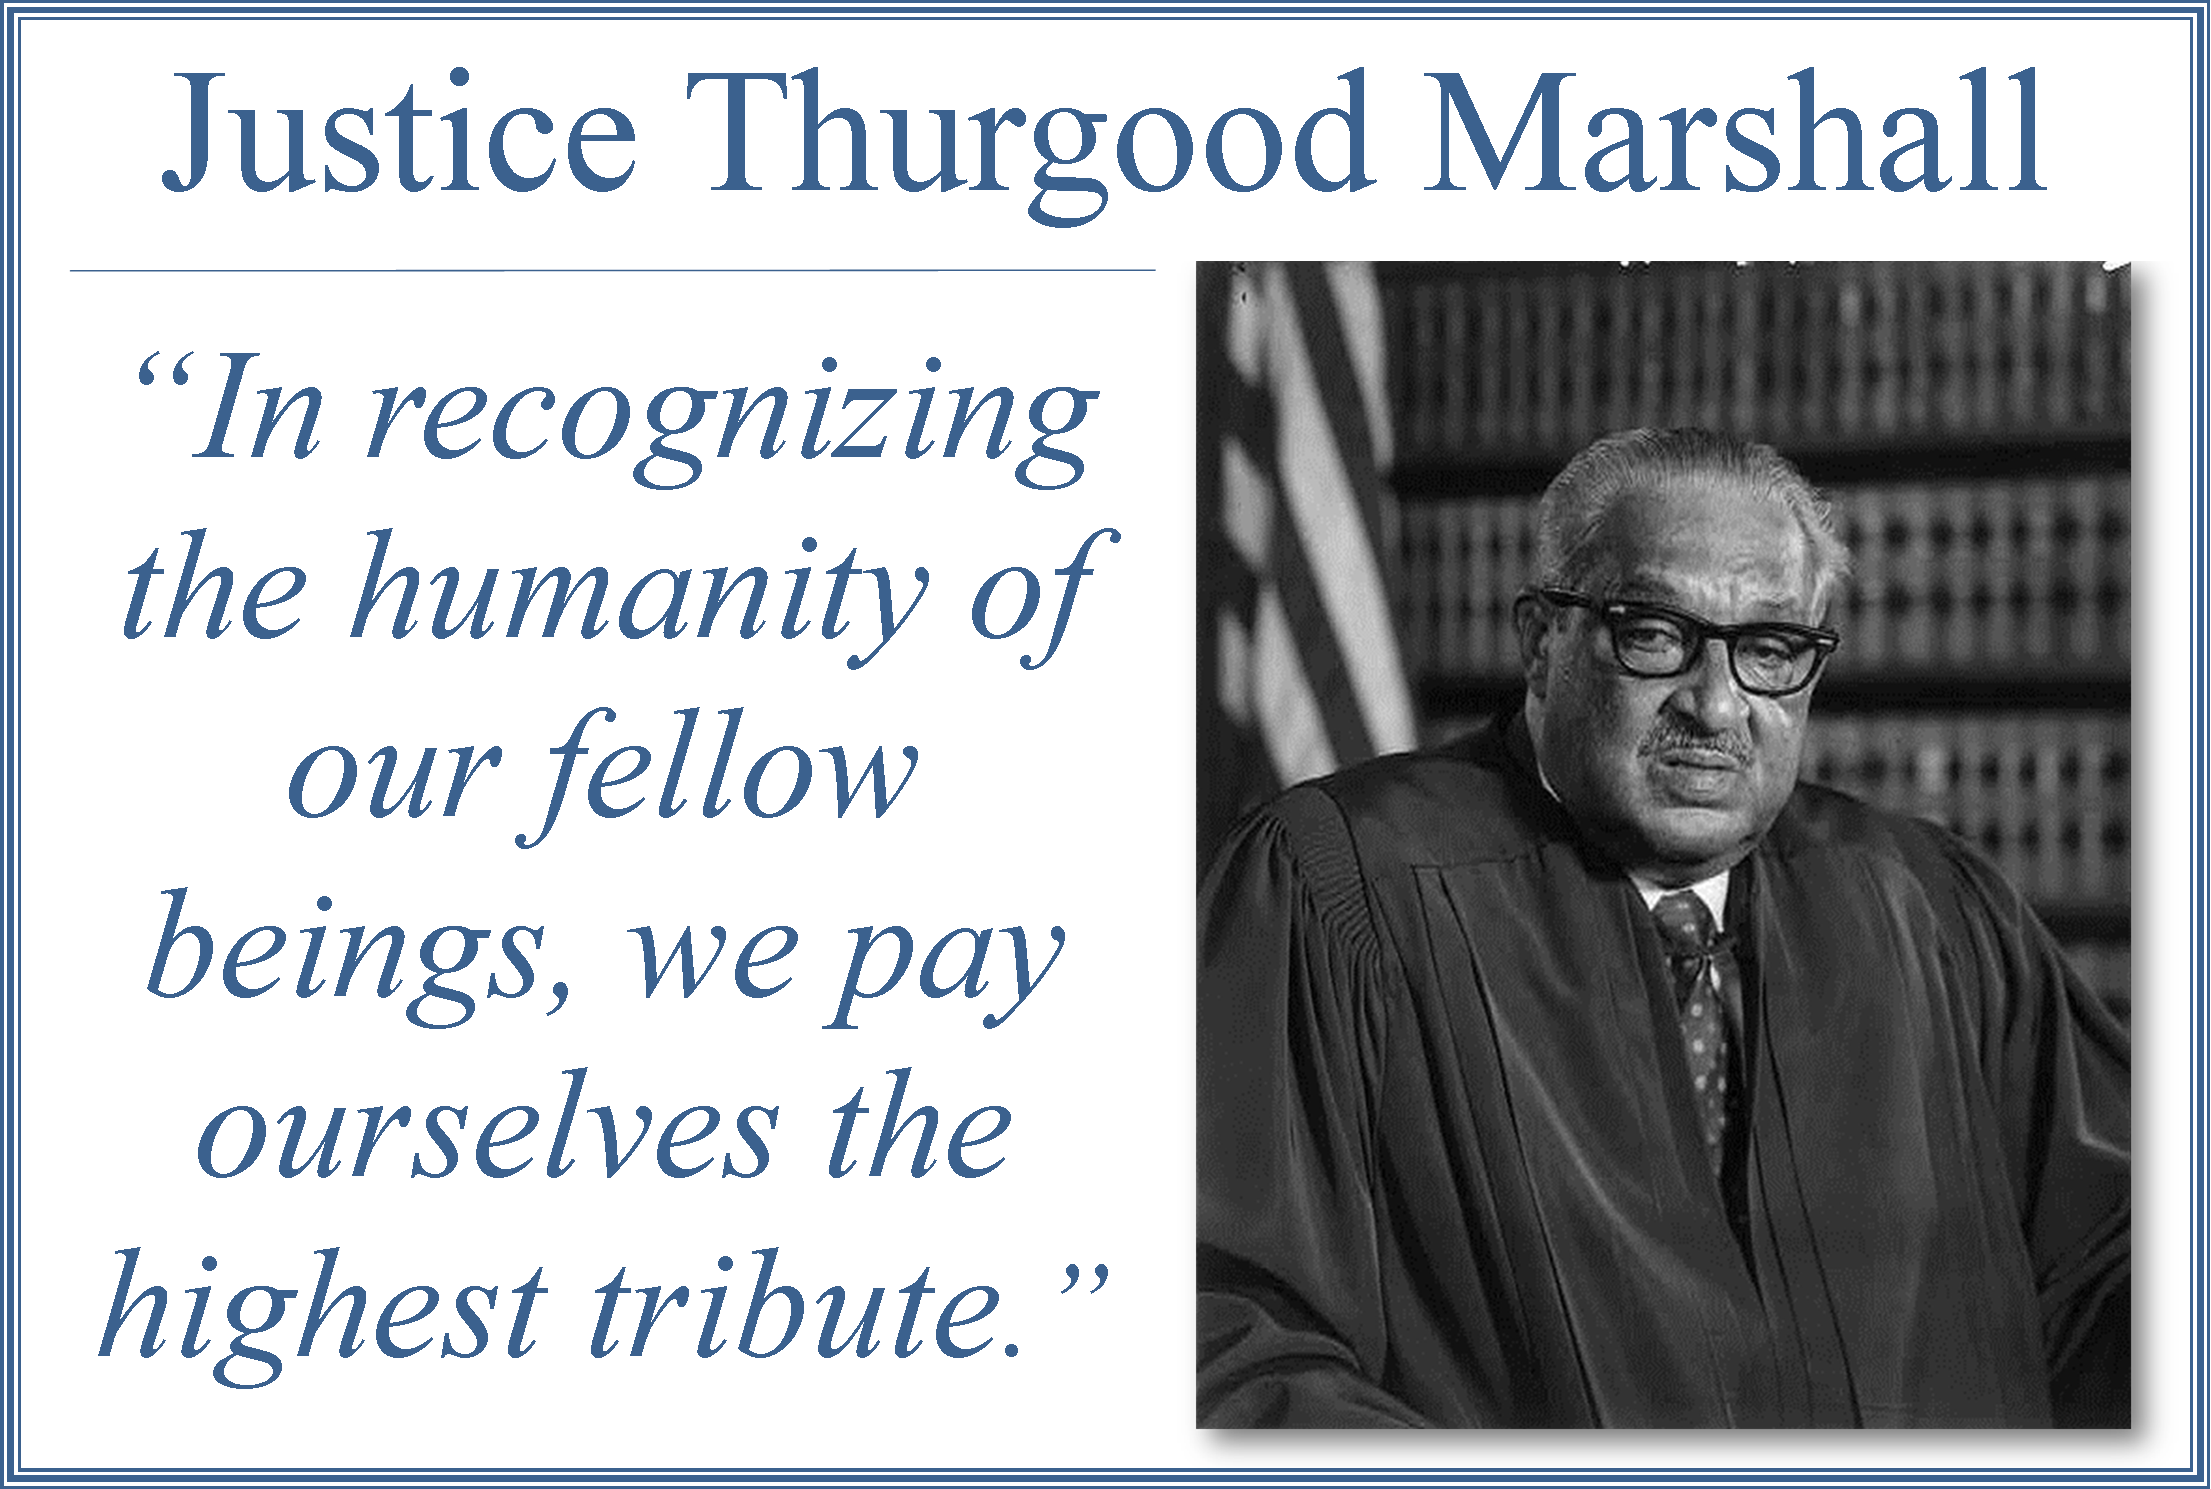 Link to Justice Thurgood Marshall digital exhibit from the Harris County Law Library.